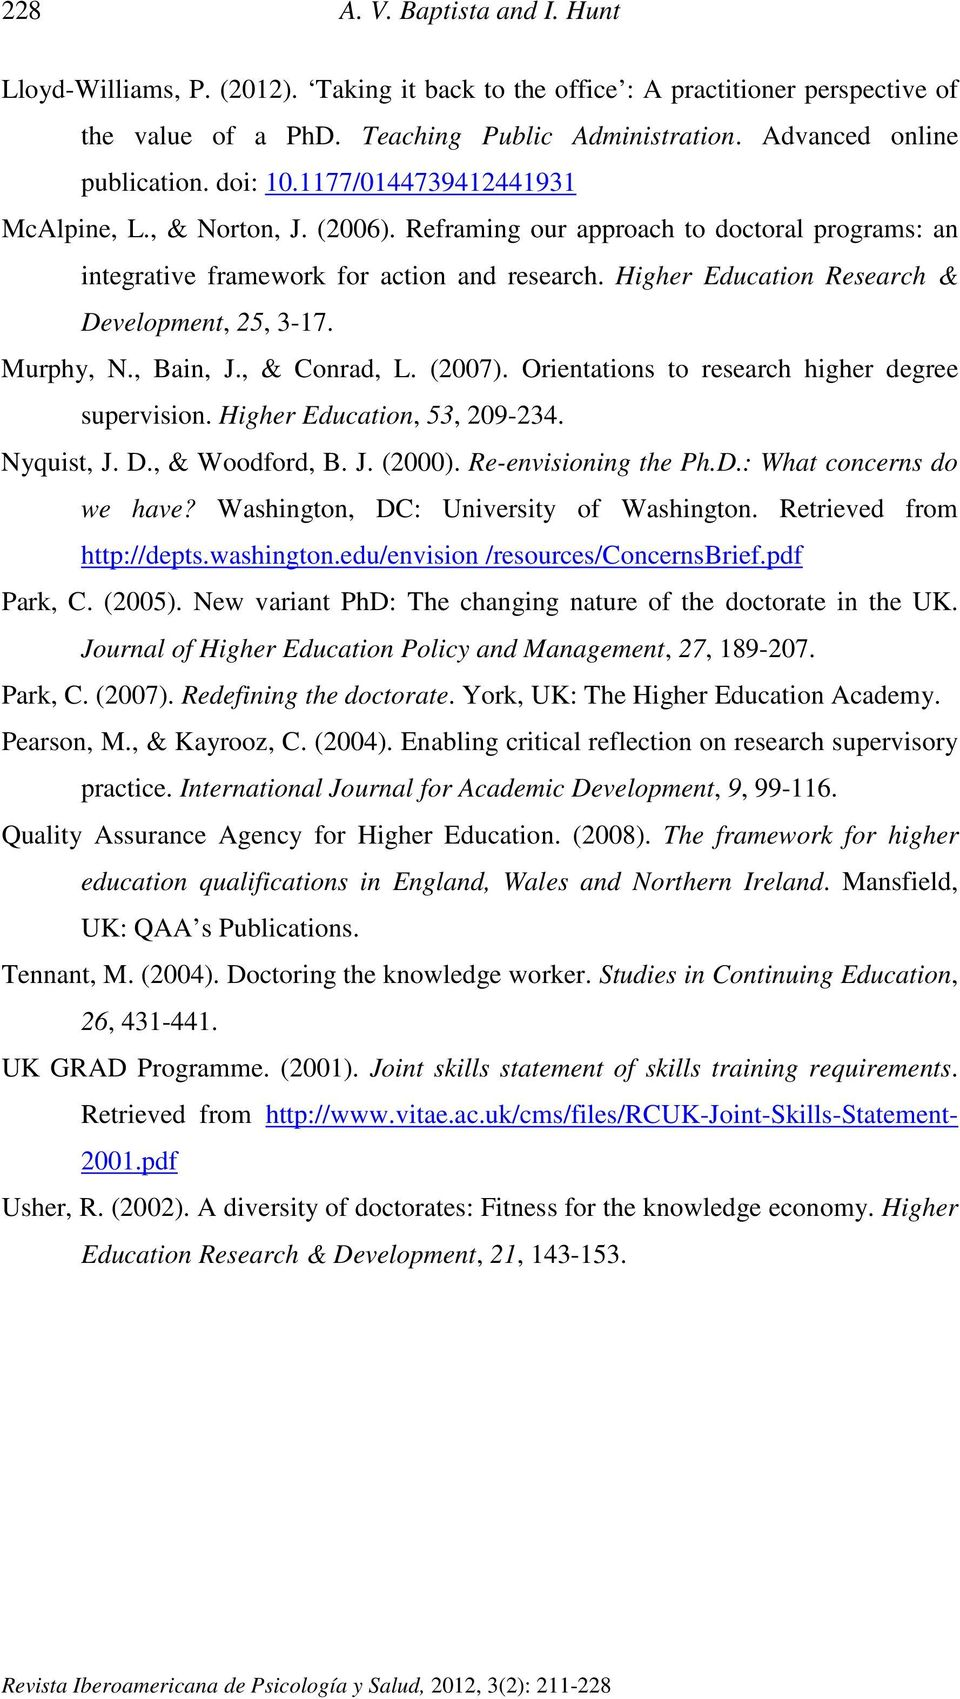 Higher Education Research & Development, 25, 3-17. Murphy, N., Bain, J., & Conrad, L. (2007). Orientations to research higher degree supervision. Higher Education, 53, 209-234. Nyquist, J. D., & Woodford, B.